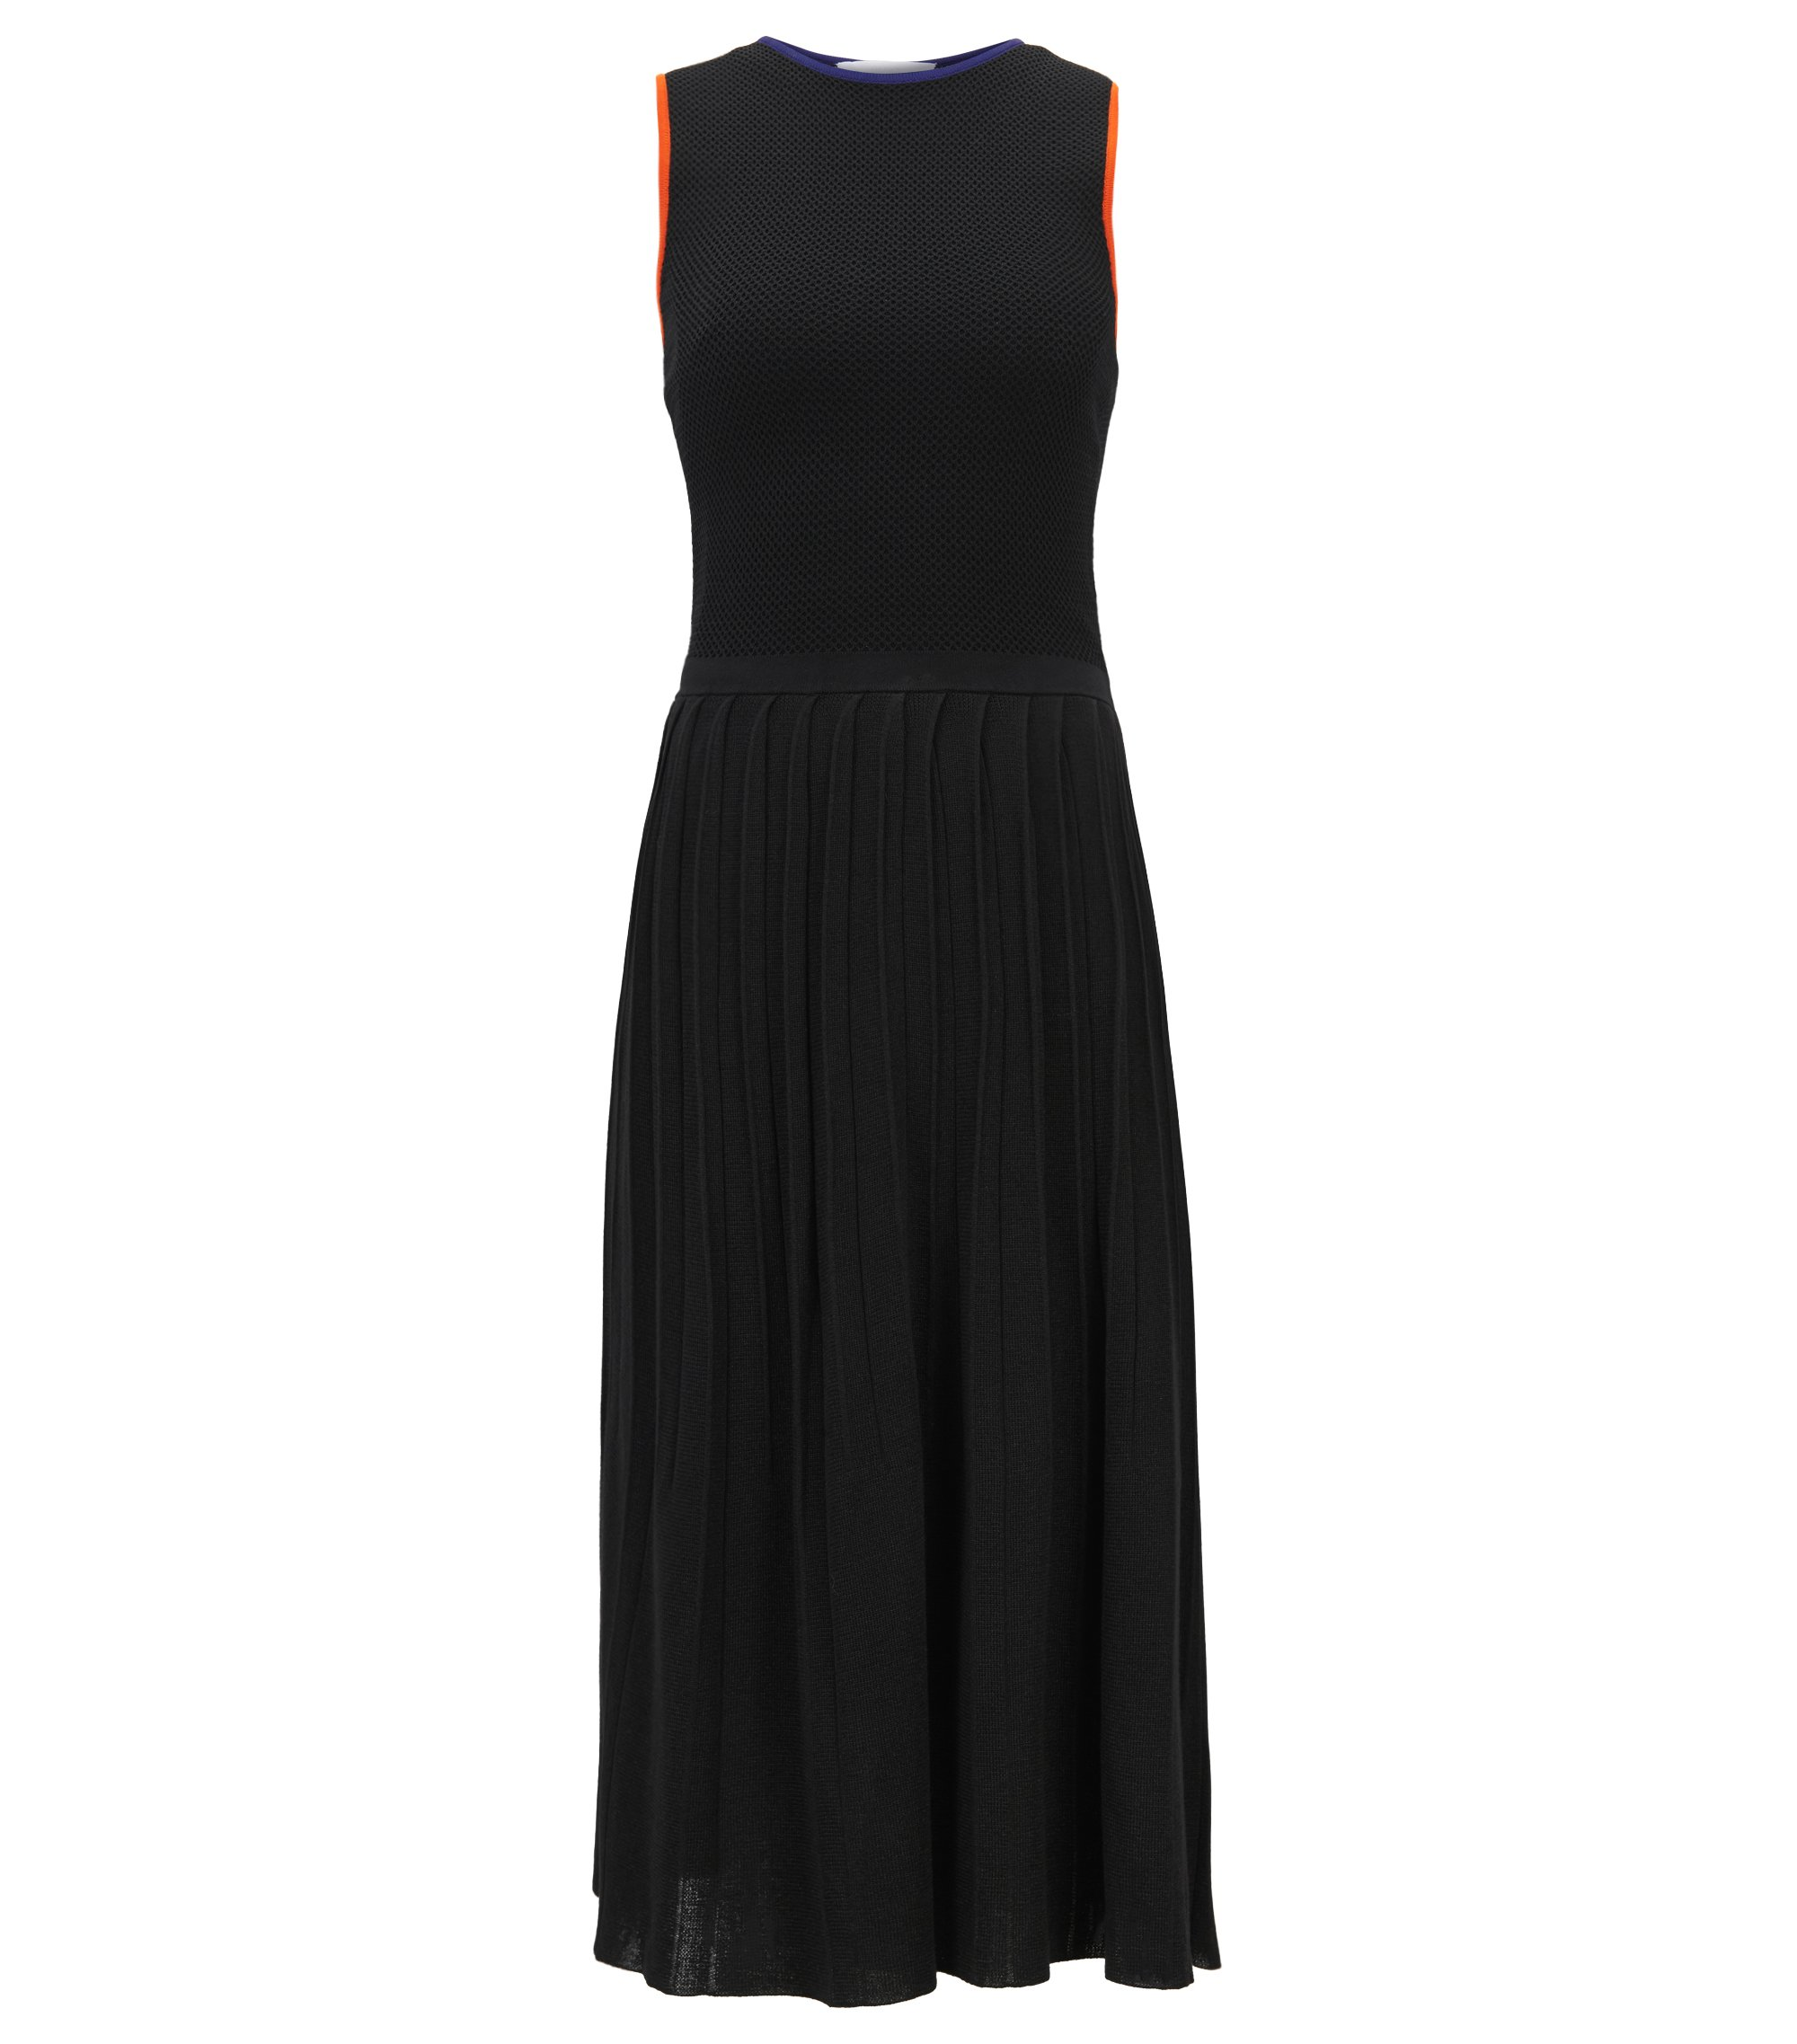 Sleeveless knitted dress with pleated skirt, Black